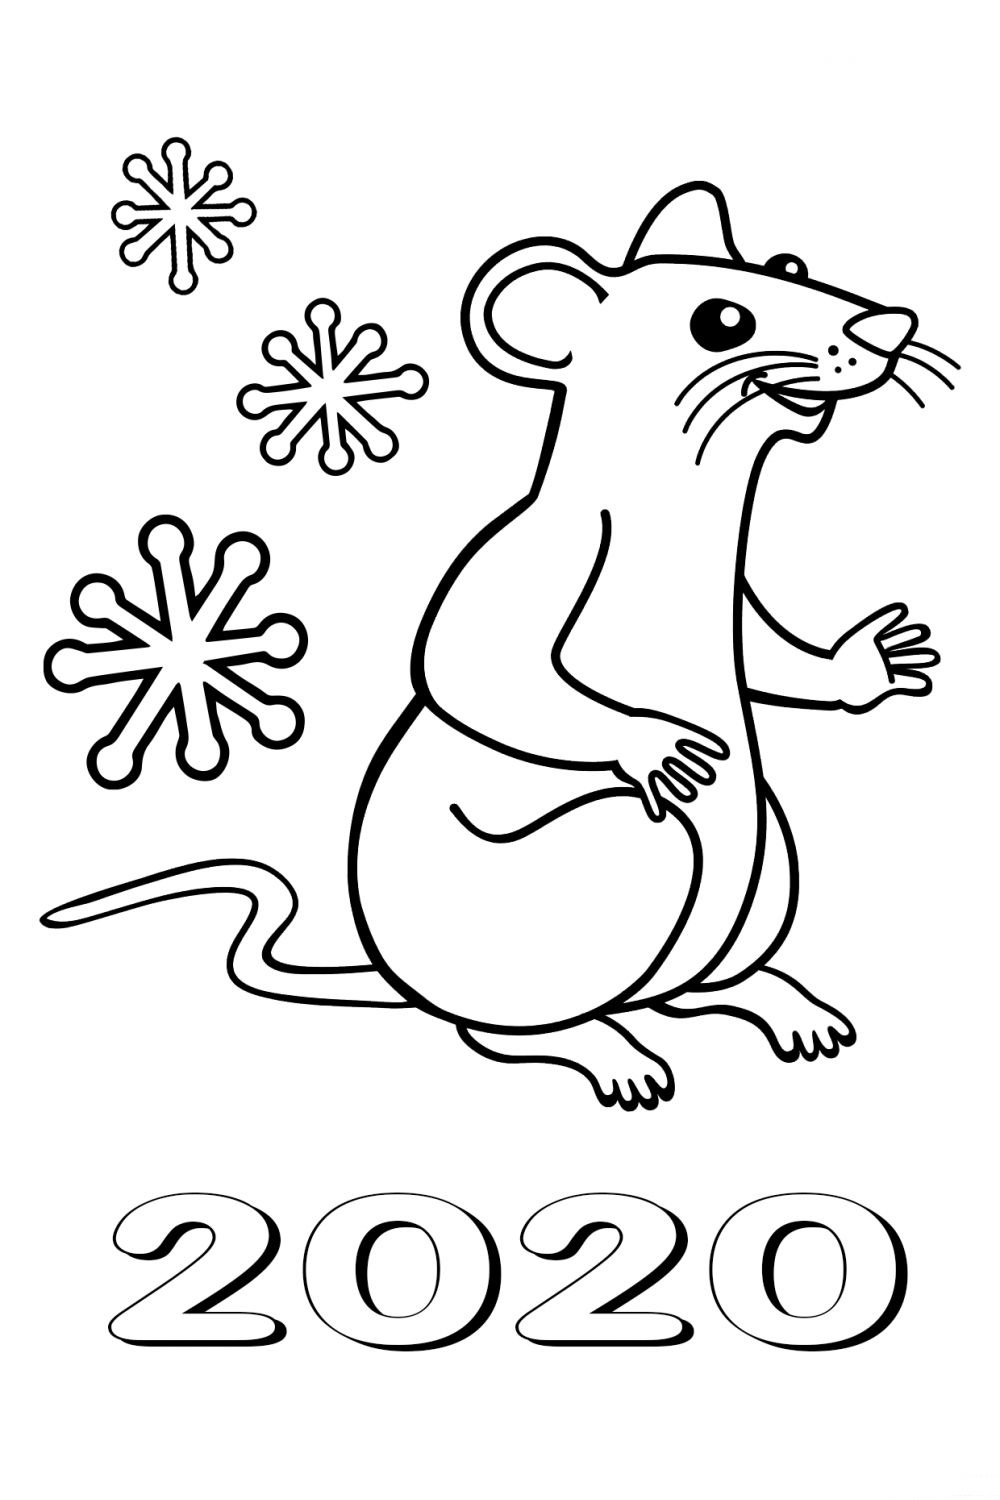 coloring pages 2020 year 2020 connect the dots and coloring page cu and non pages coloring 2020